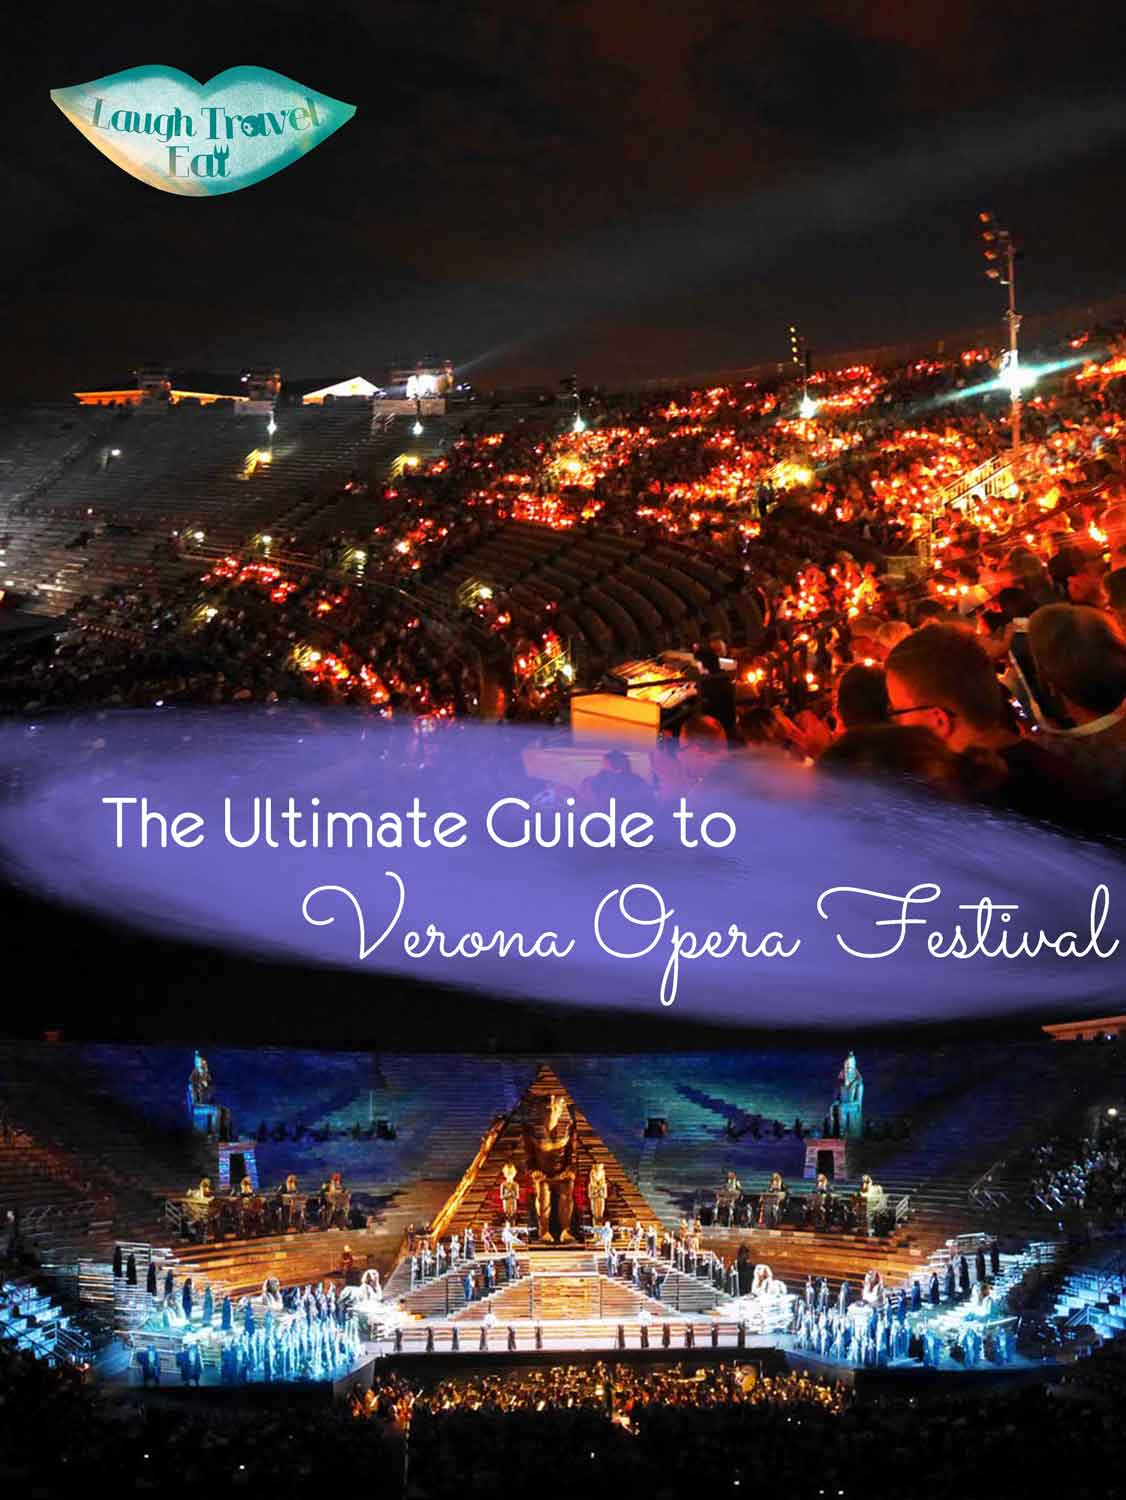 The Ultimate Guide to Verona Opera Festival | Laugh Travel Eat